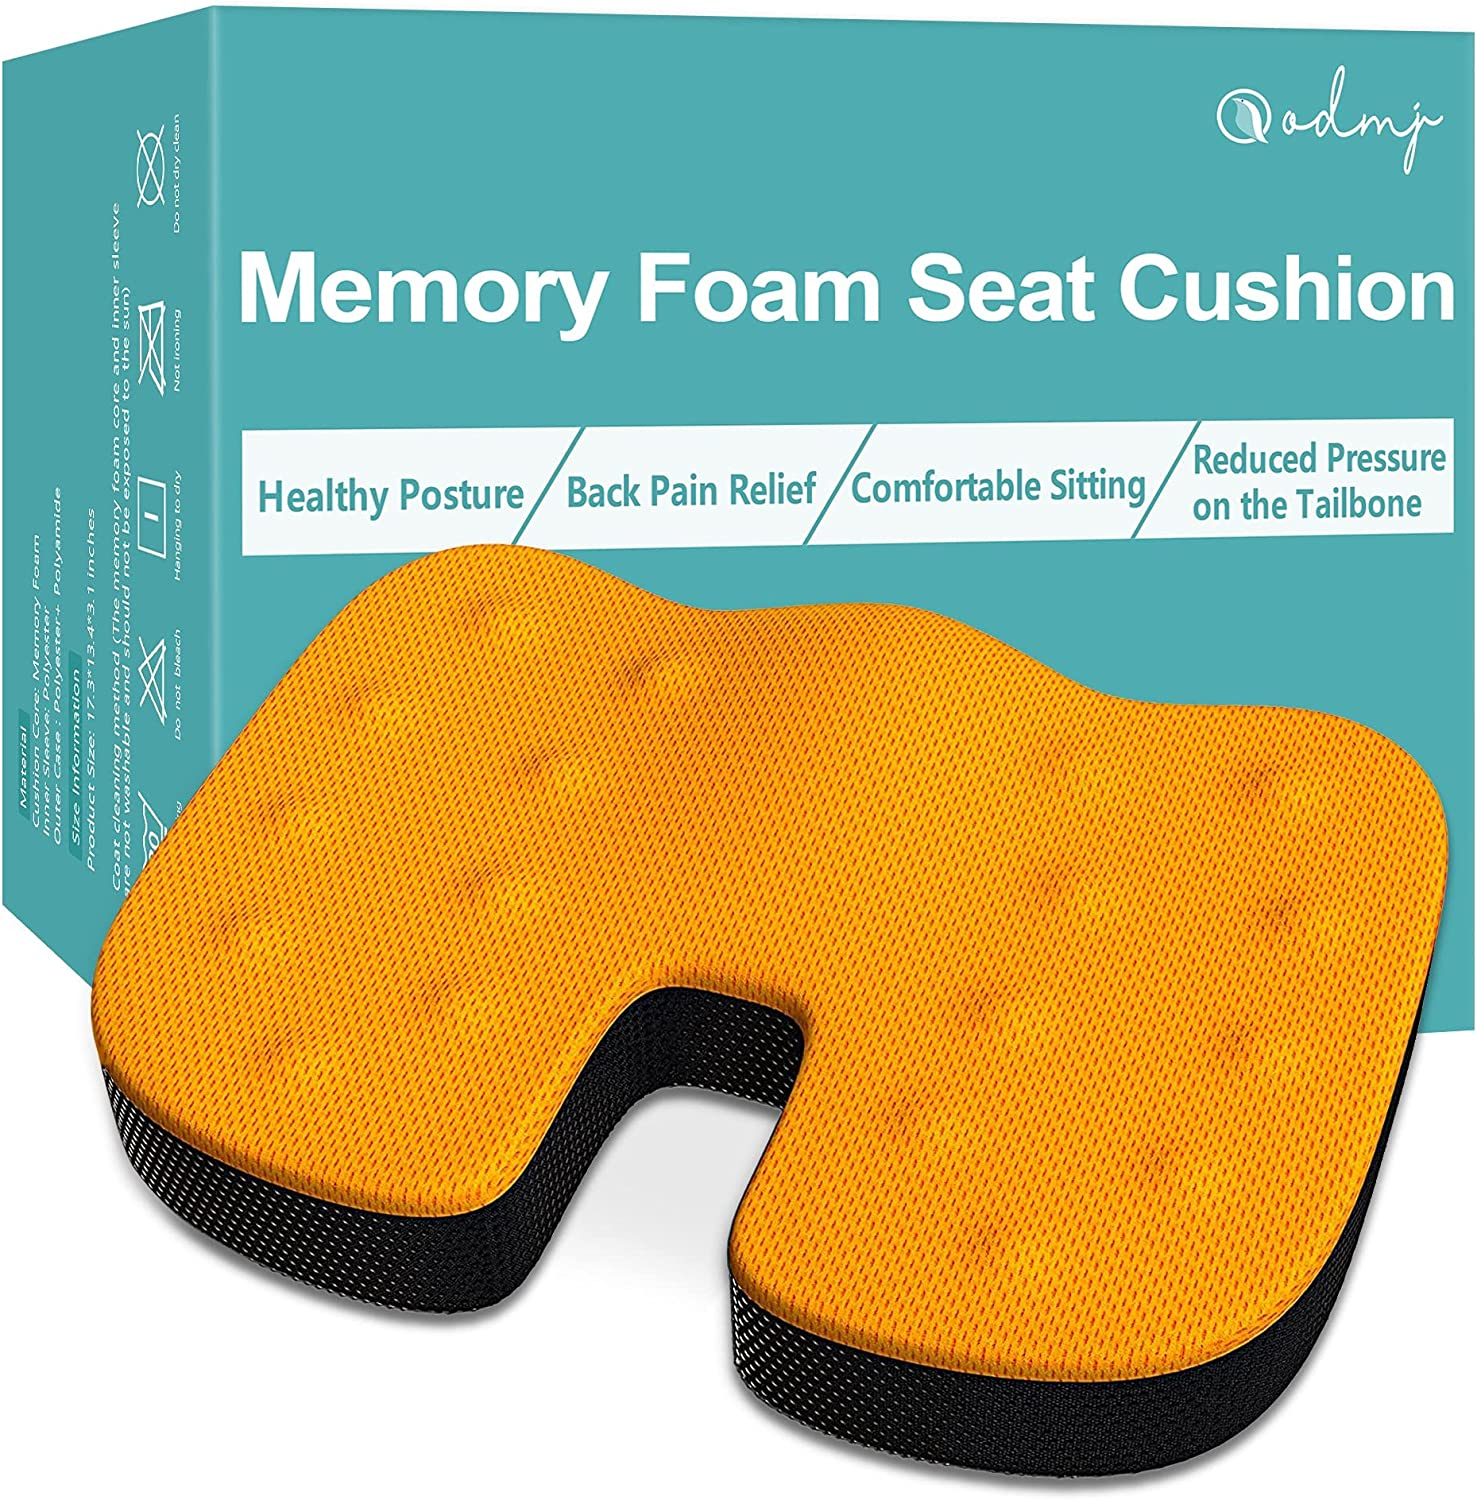 Memory Max Japan Maker New 61% OFF Foam Seat Cushion for ODMJ Coccyx Chair Cush Office